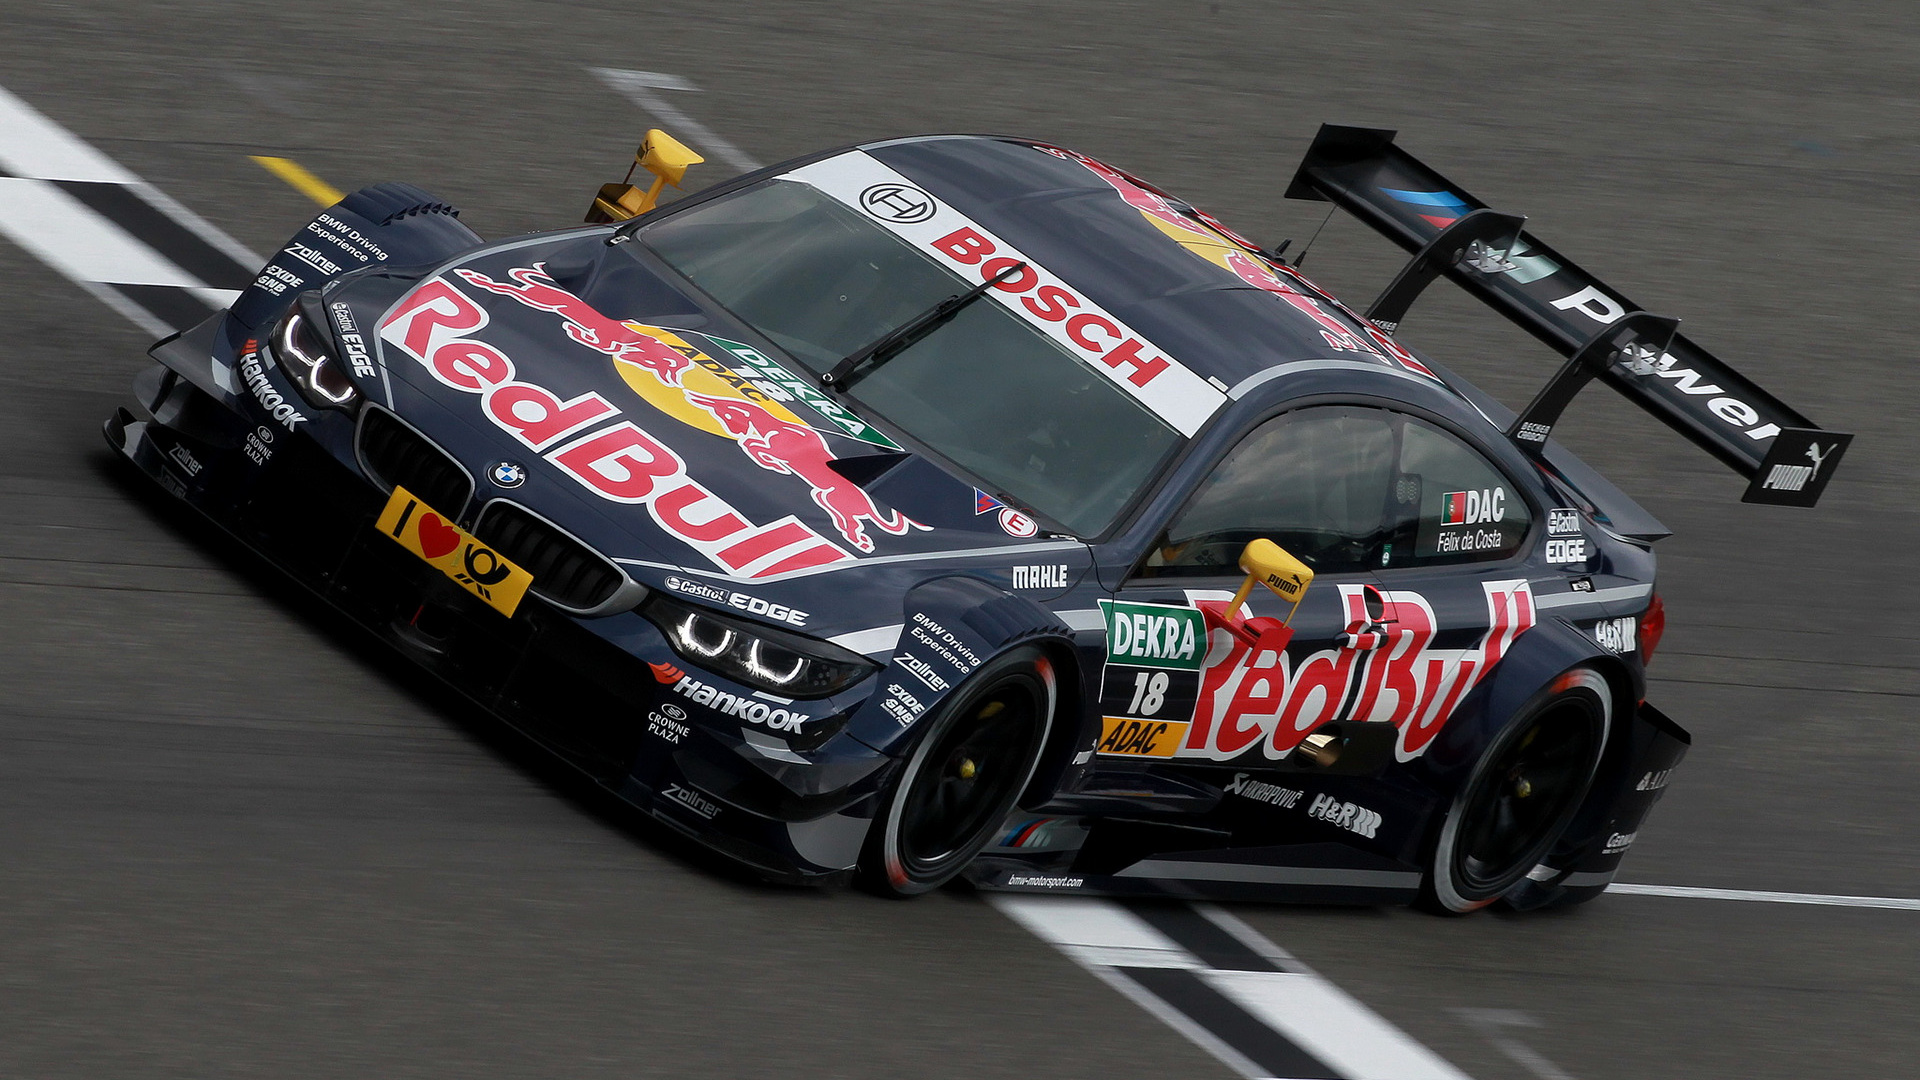 2015 Bmw 3 Series >> 2014 BMW M4 DTM - Wallpapers and HD Images | Car Pixel